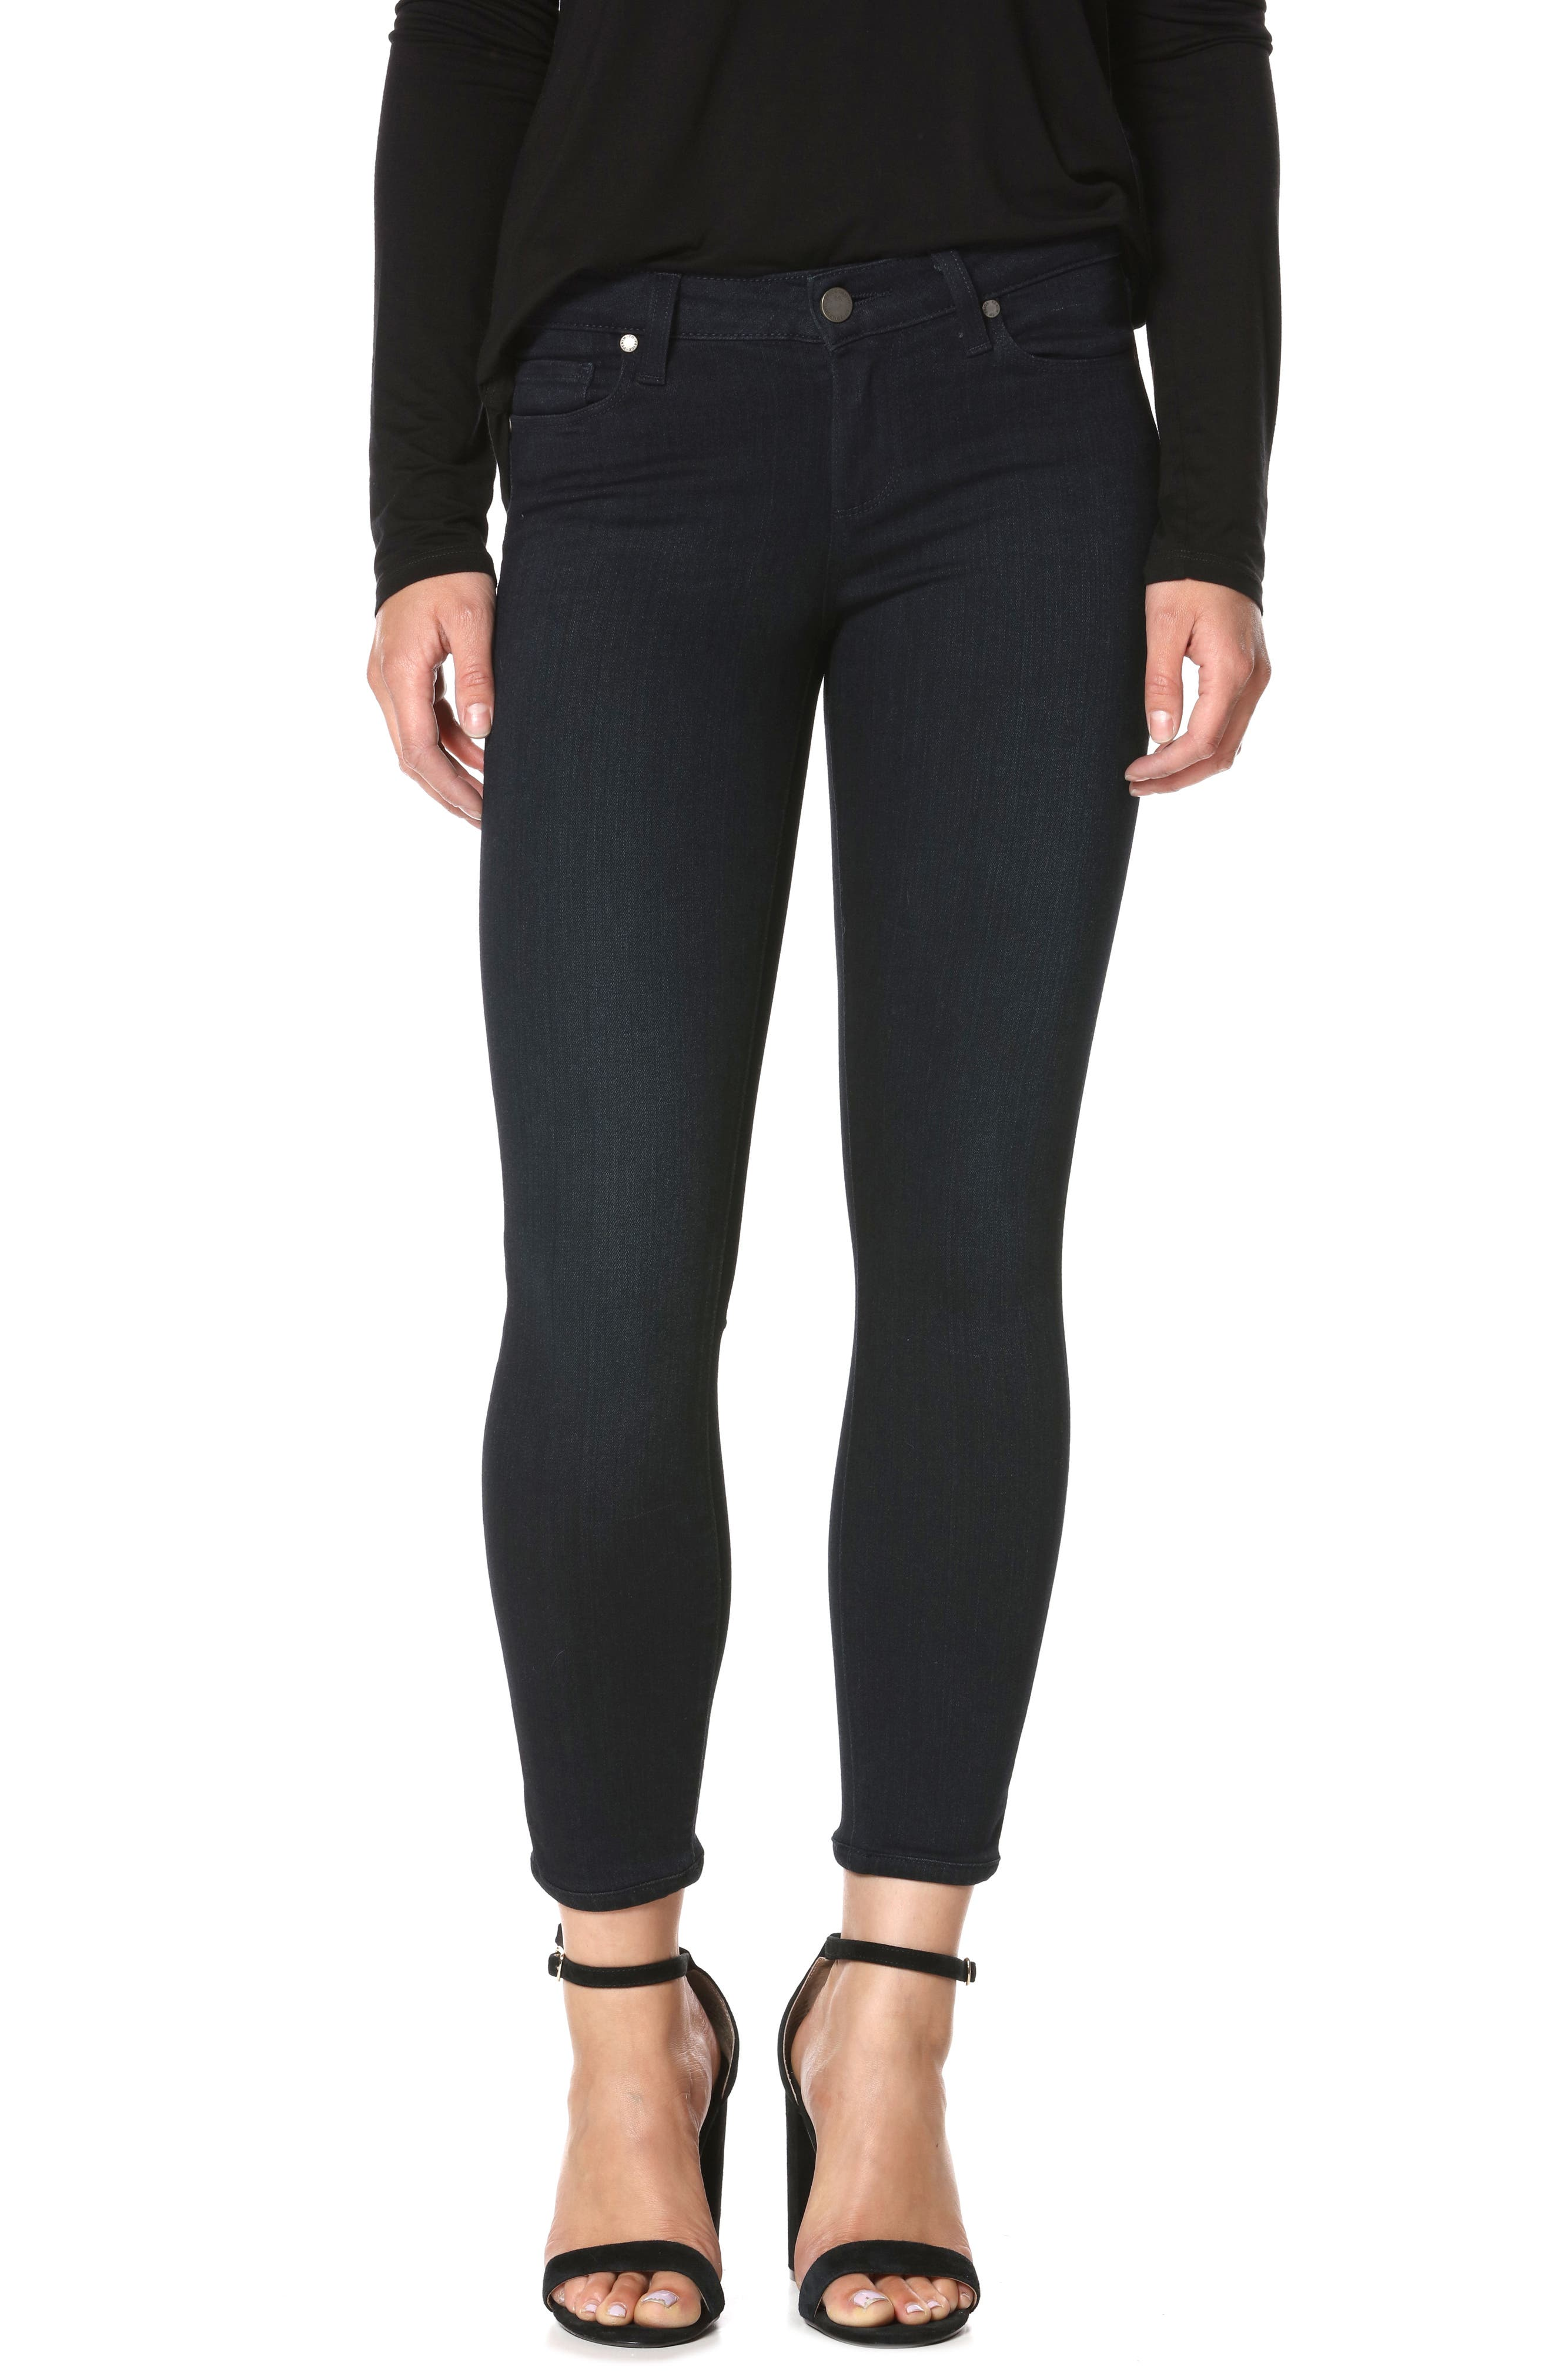 Alternate Image 1 Selected - PAIGE Transcend - Verdugo Crop Skinny Jeans (Tonal Mona)